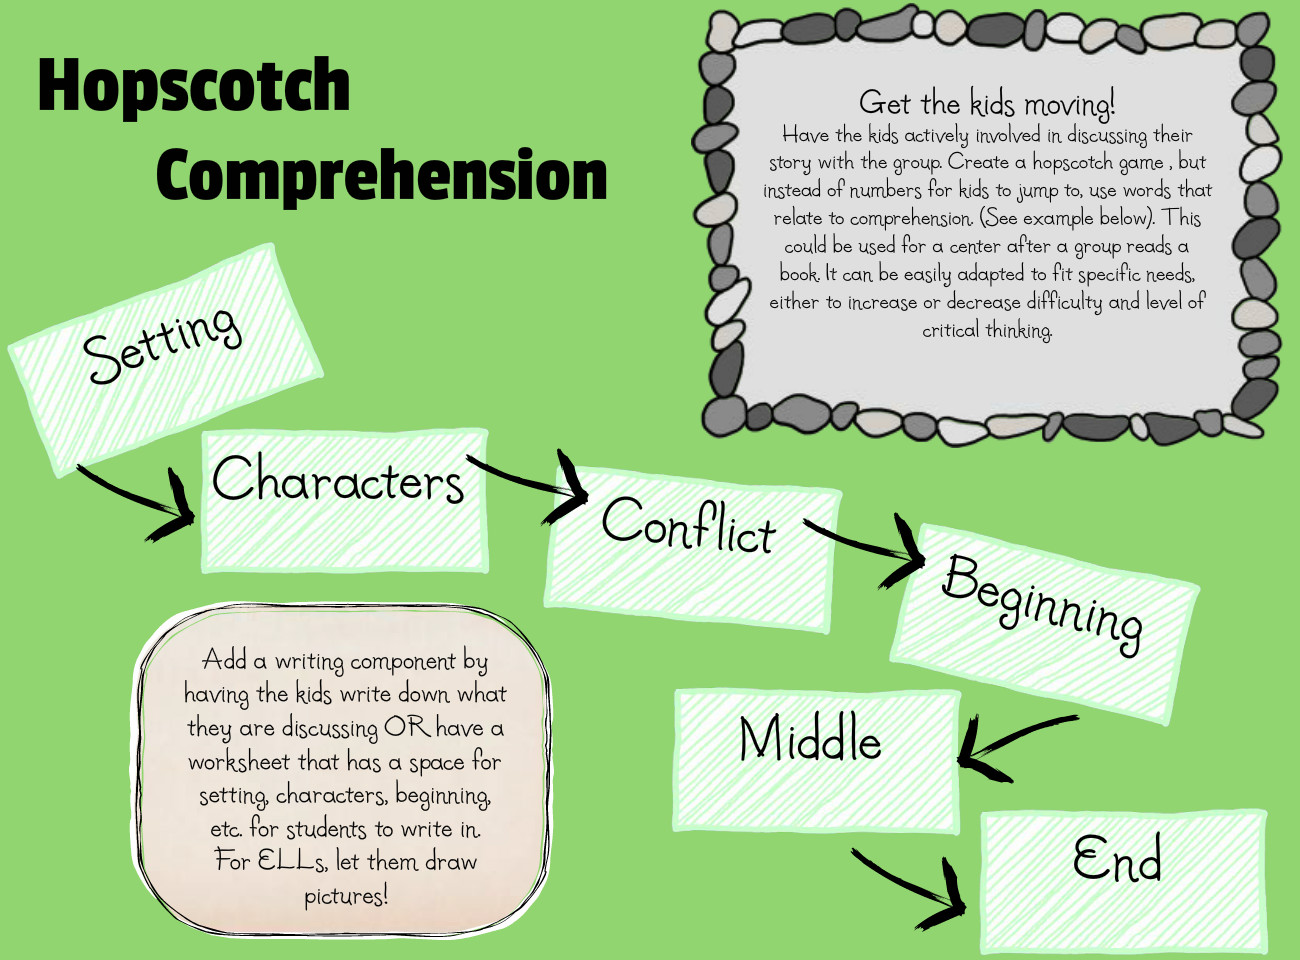 Hopscotch comprehension text images music video glogster edu hopscotch comprehension text images music video glogster edu interactive multimedia posters ibookread Download